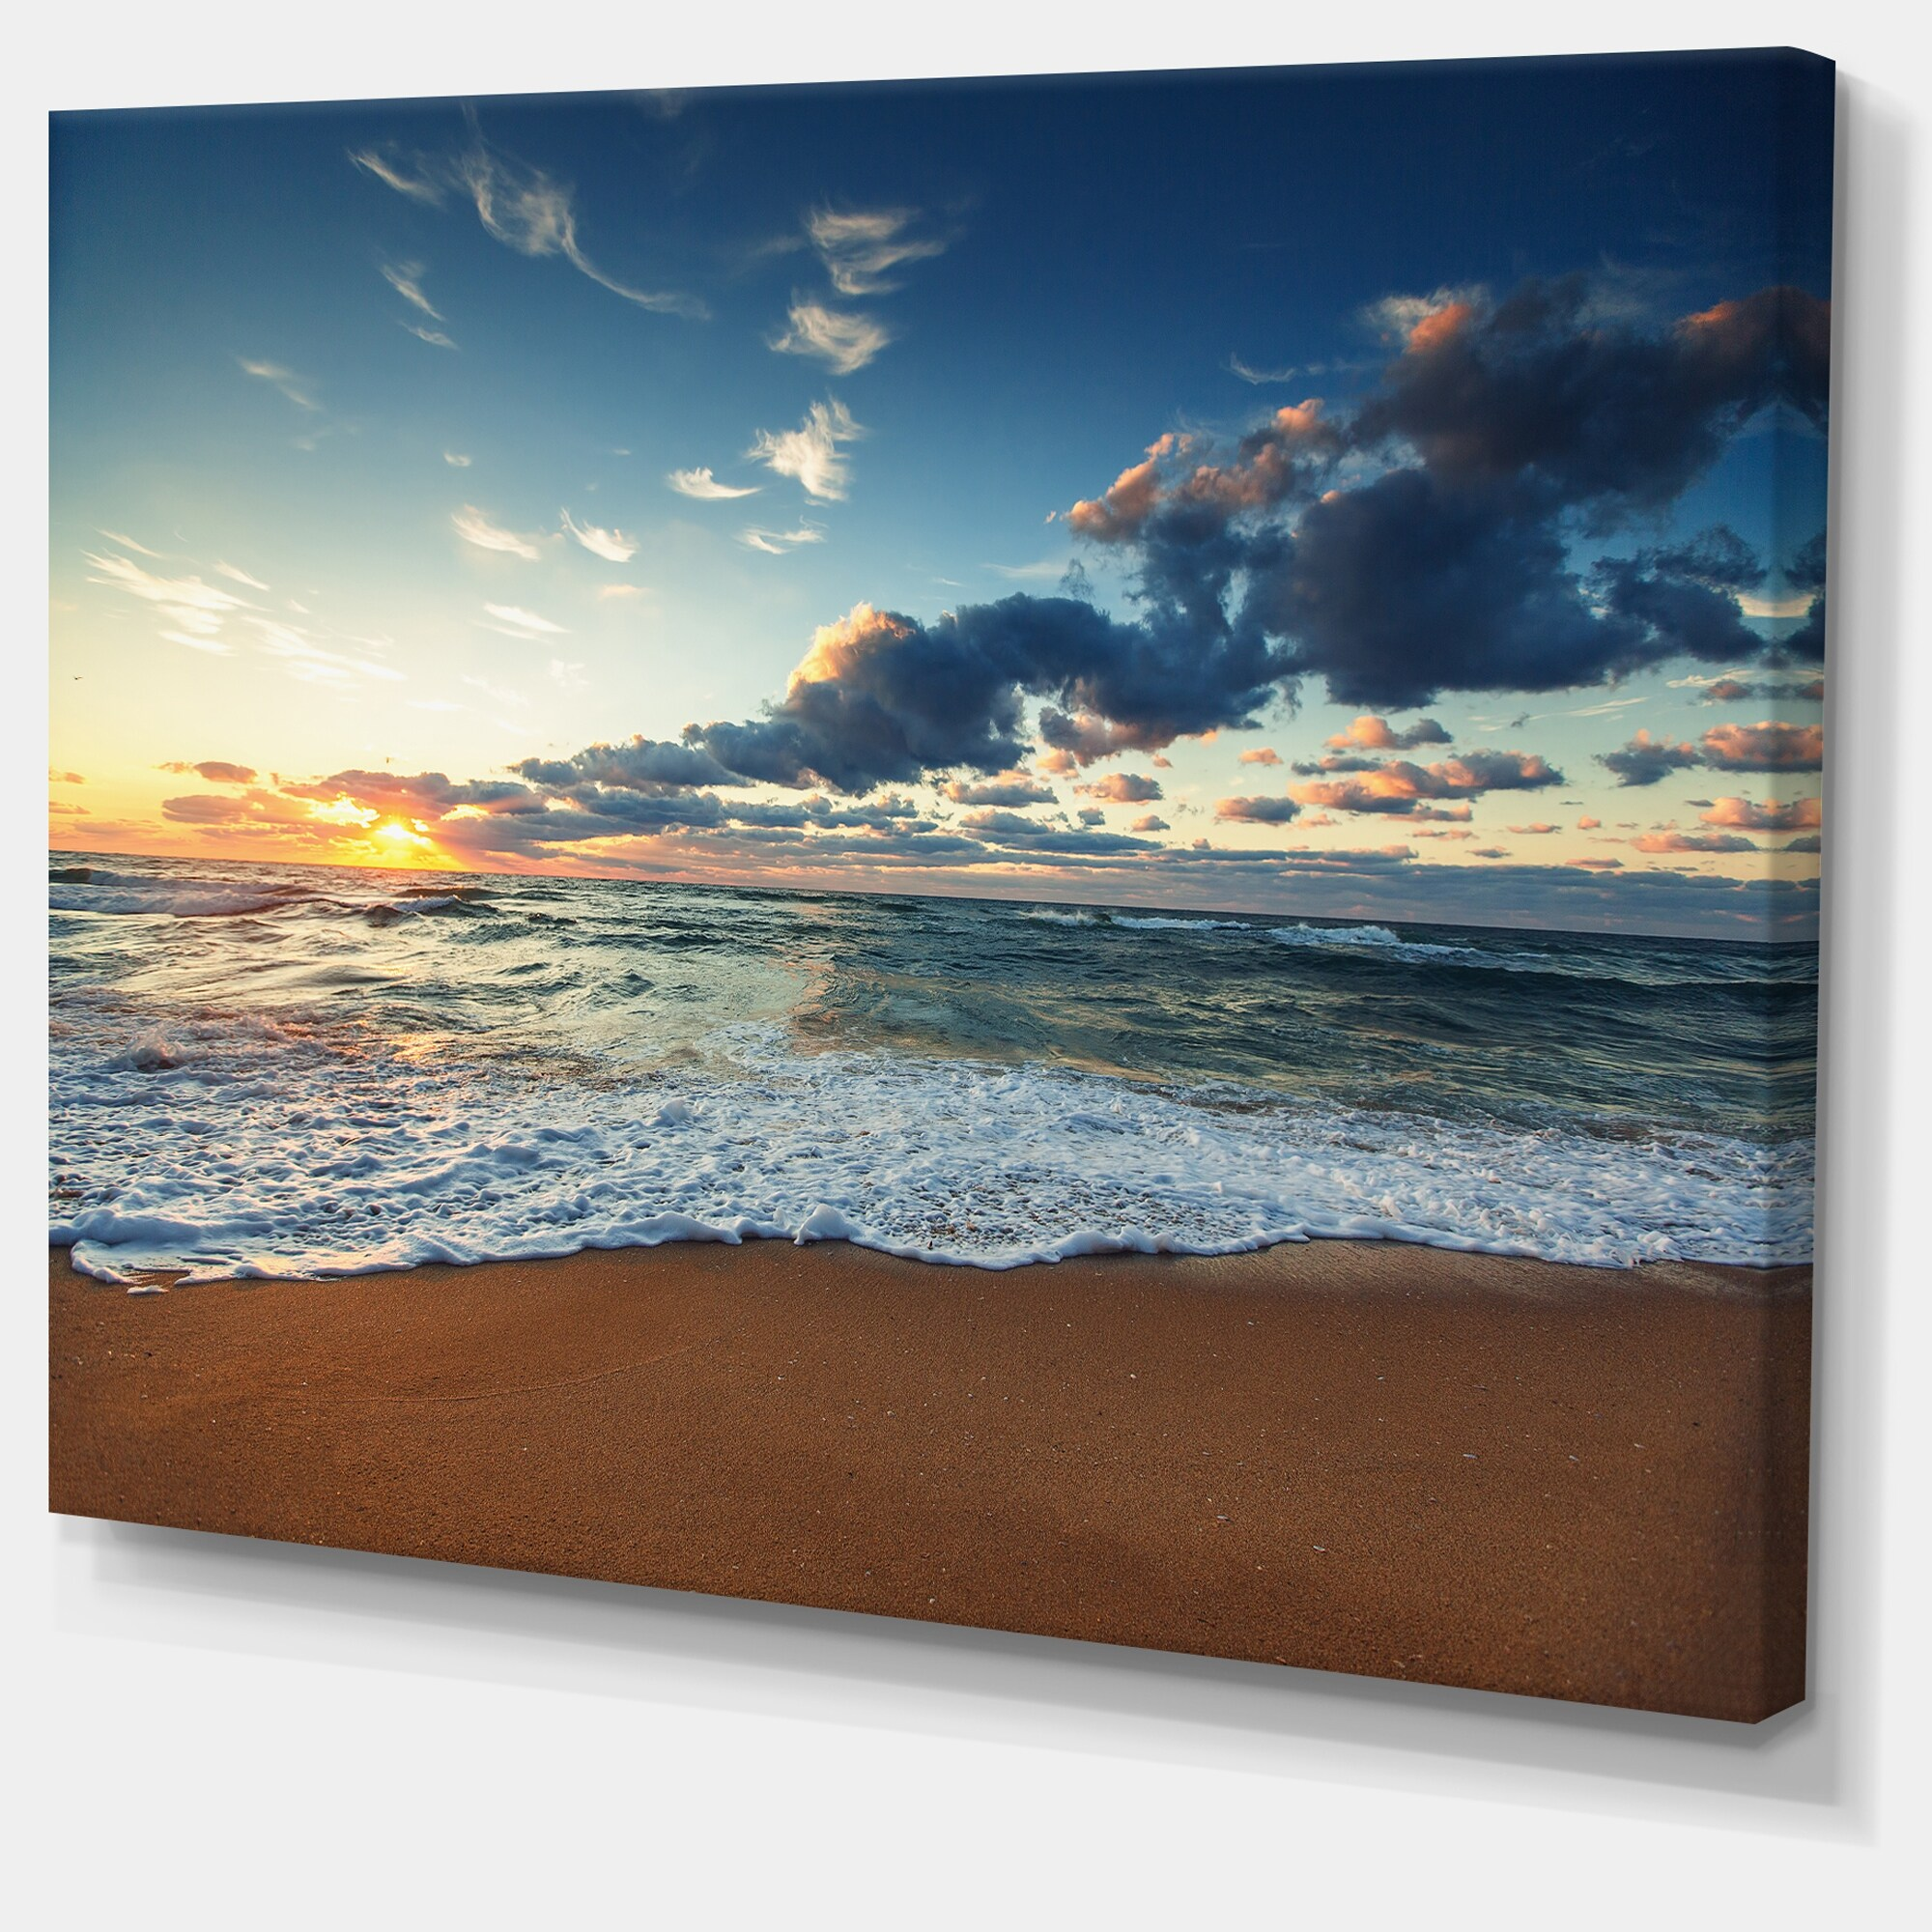 Sunrise-and-Glowing-Waves-in-Ocean-Seashore-Canvas-Wall-Small thumbnail 10